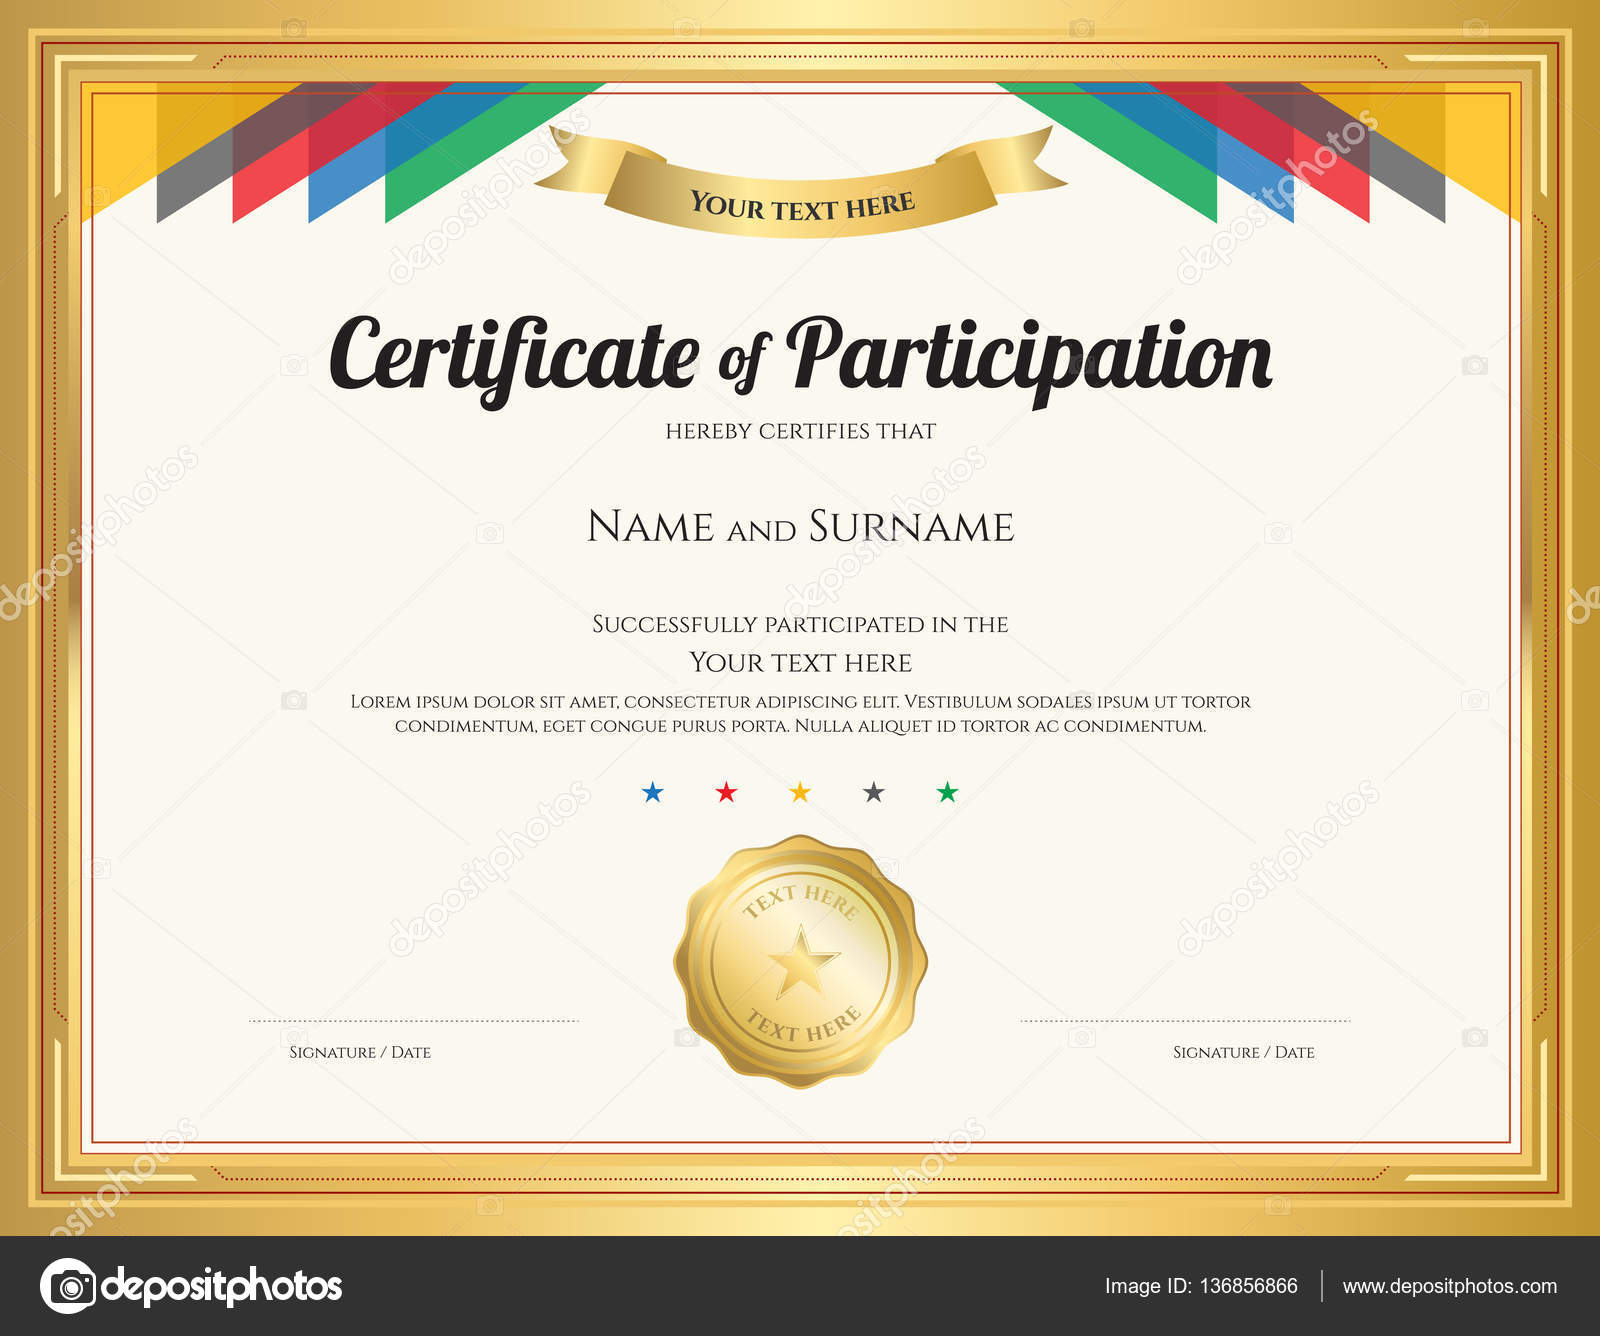 Certificate Of Participation Template Free Certificate Of Participation Template Word 28 Images Best Photos Of Template Of Certificate